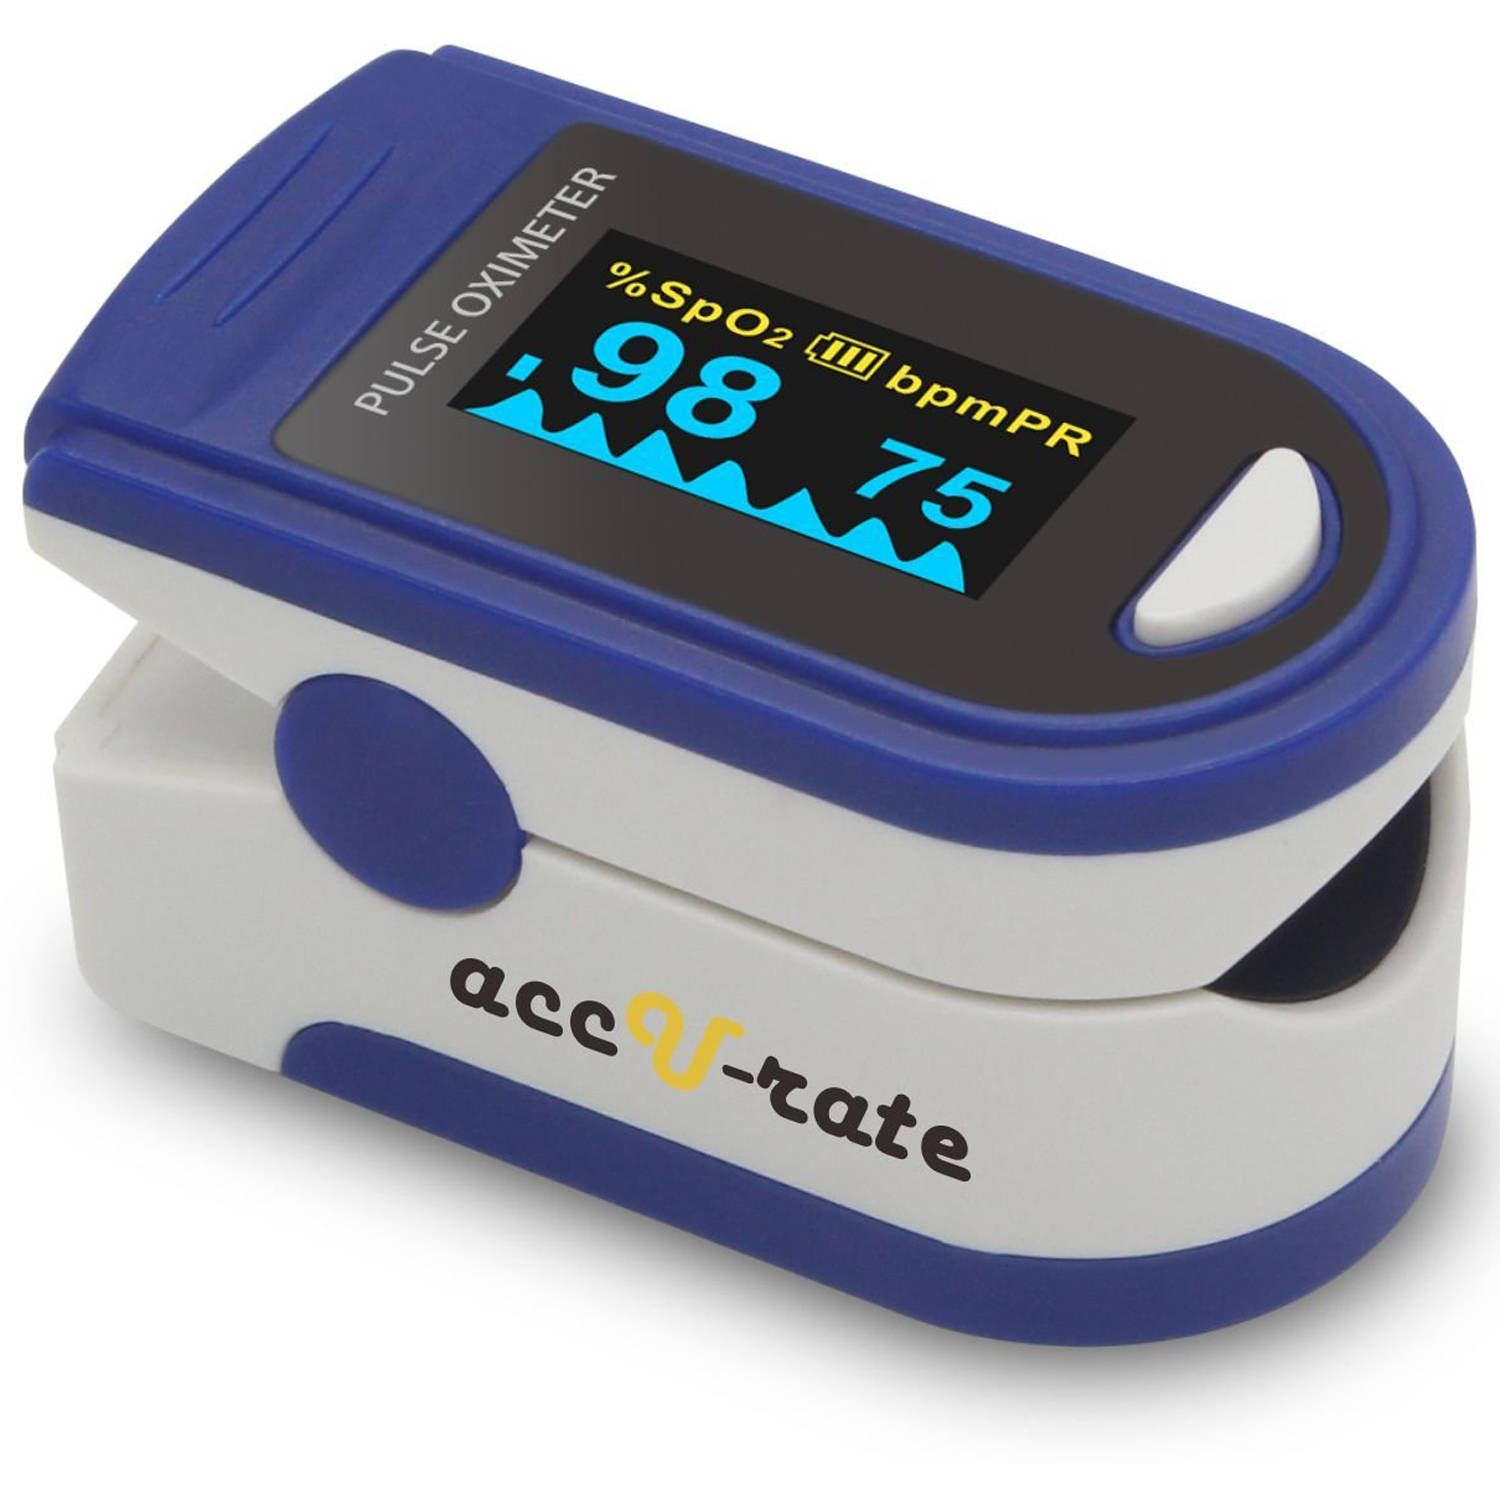 Image of Acc U Rate Pro Series Deluxe CMS 500D Fingertip Pulse Oximeter Blood Oxygen Saturation Monitor with Plethysmograph Feature, Silicon Cover, Lanyard and Batteries, Sapphire Blue